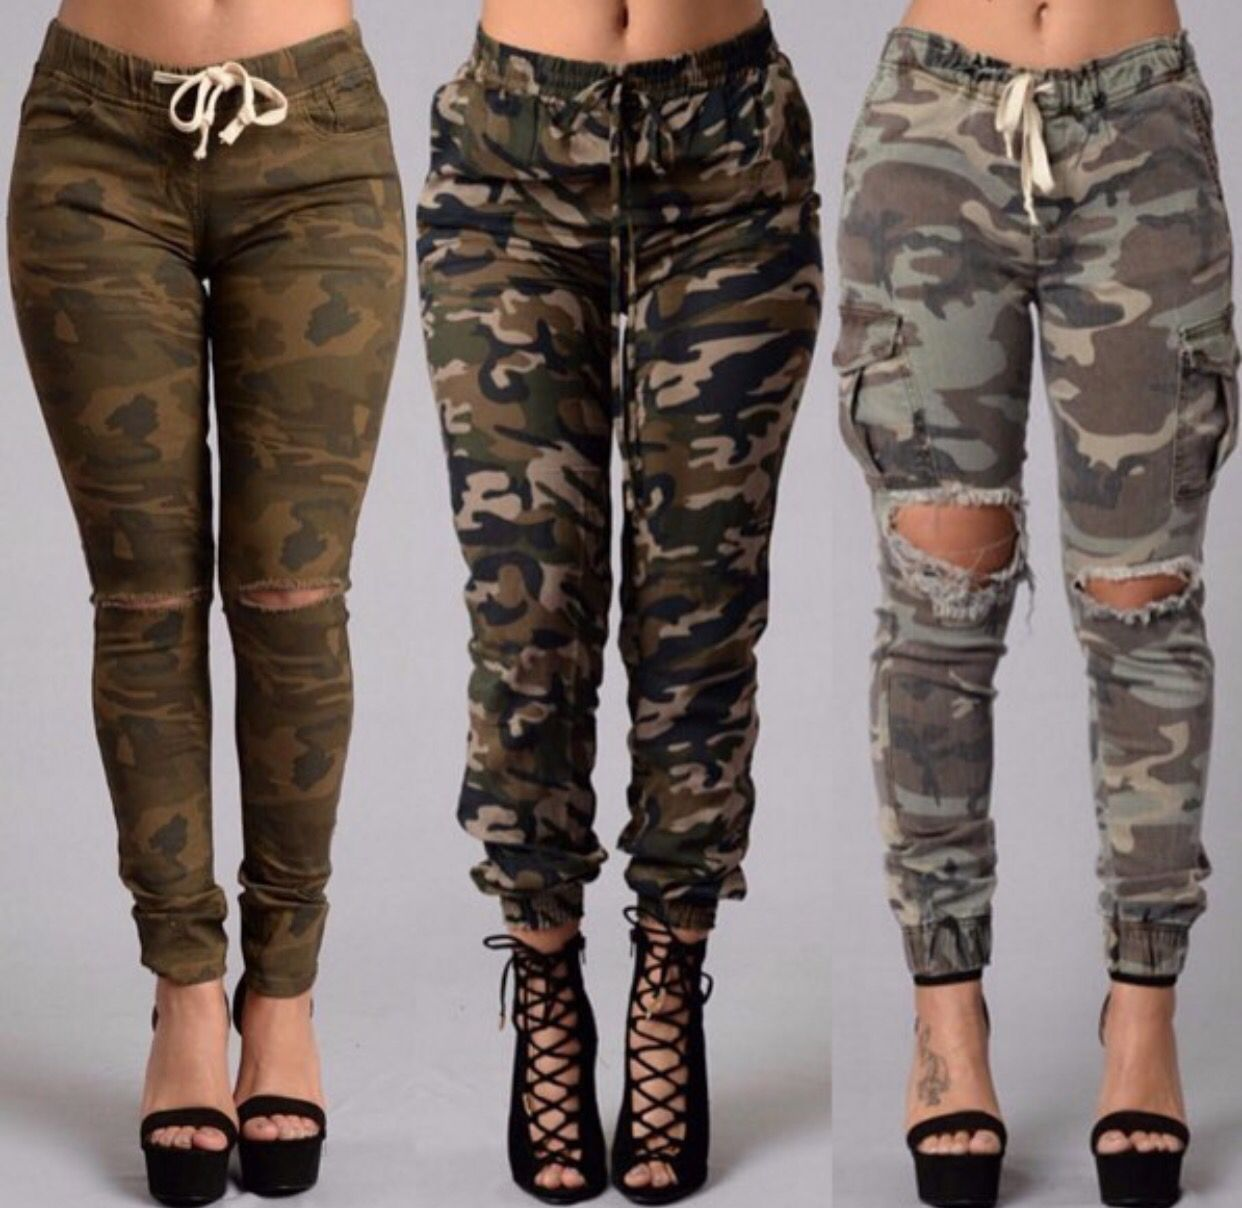 Is it bad that I have a strange attraction/fetish to anyone who wears camo pants...?